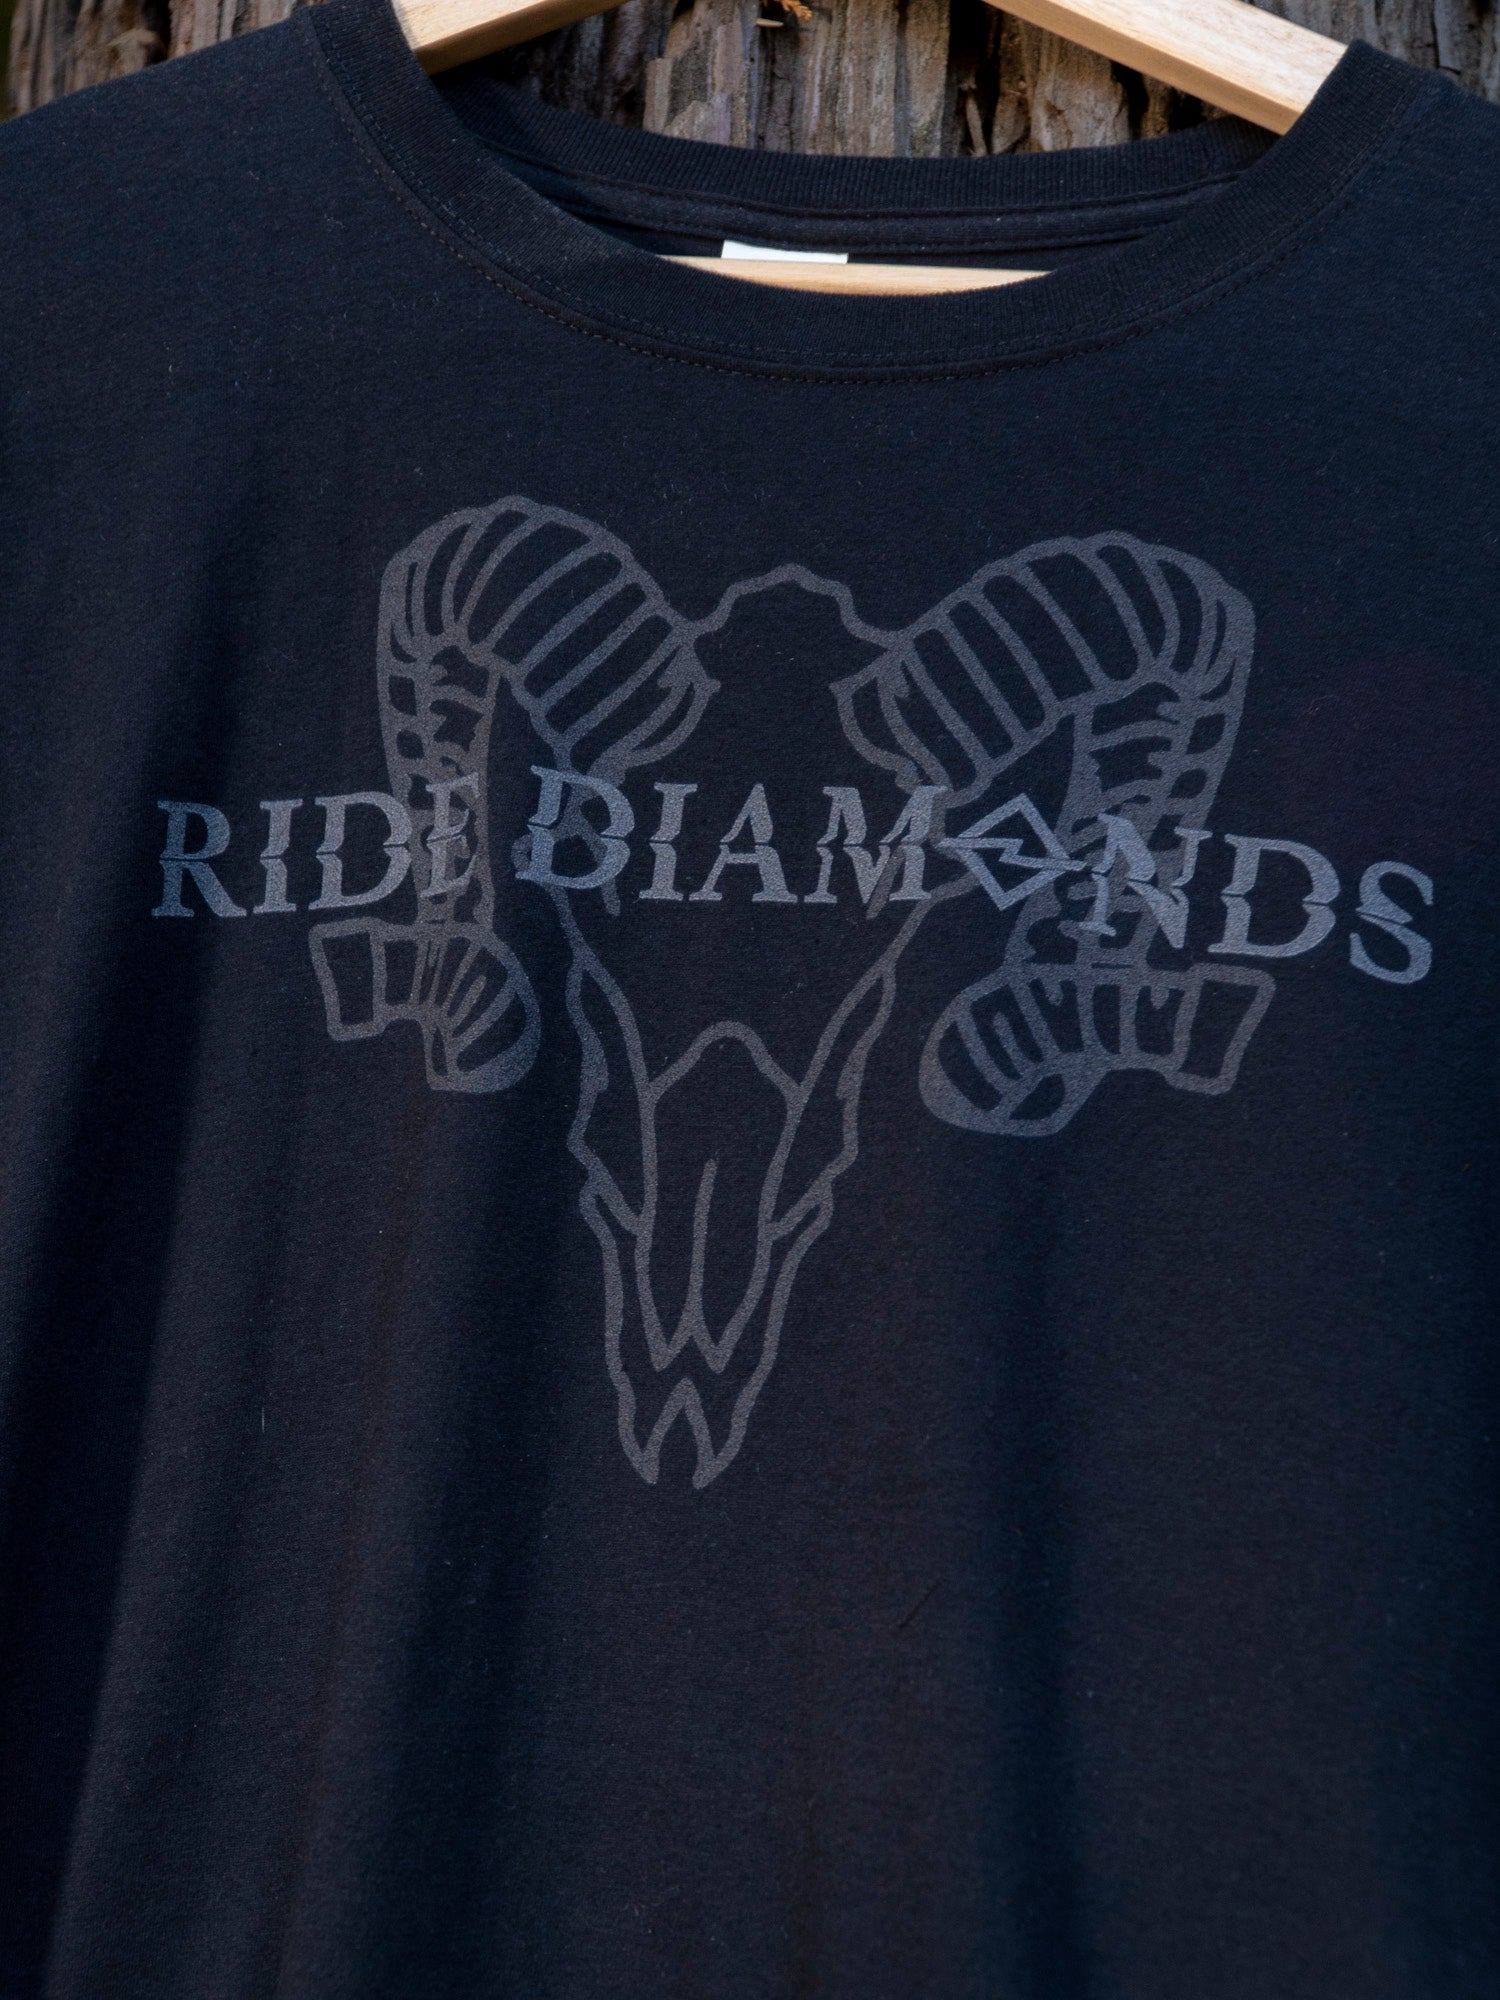 Ride Diamonds Ram Stealth Shirt